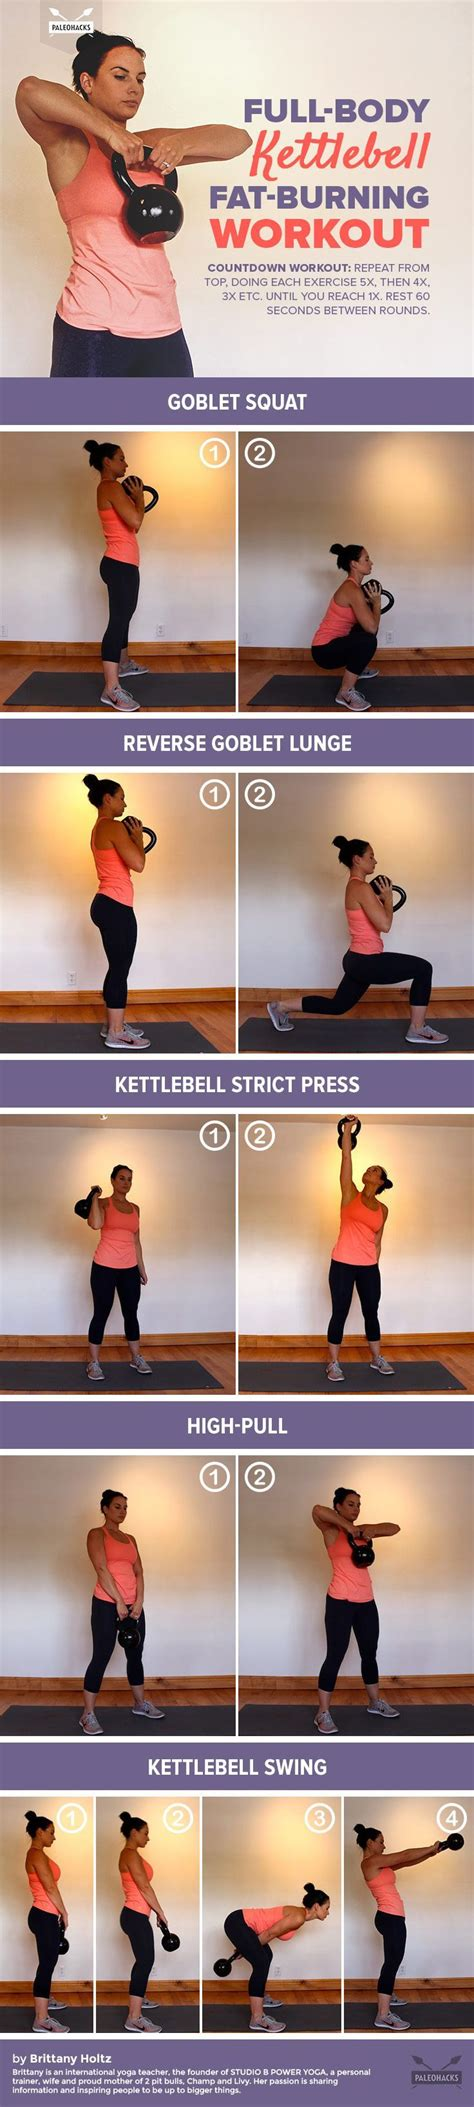 kettlebell workout fat body burning exercises workouts trening fitness kettle bell exercise challenge entrenamiento routines upper burn belly gym plan